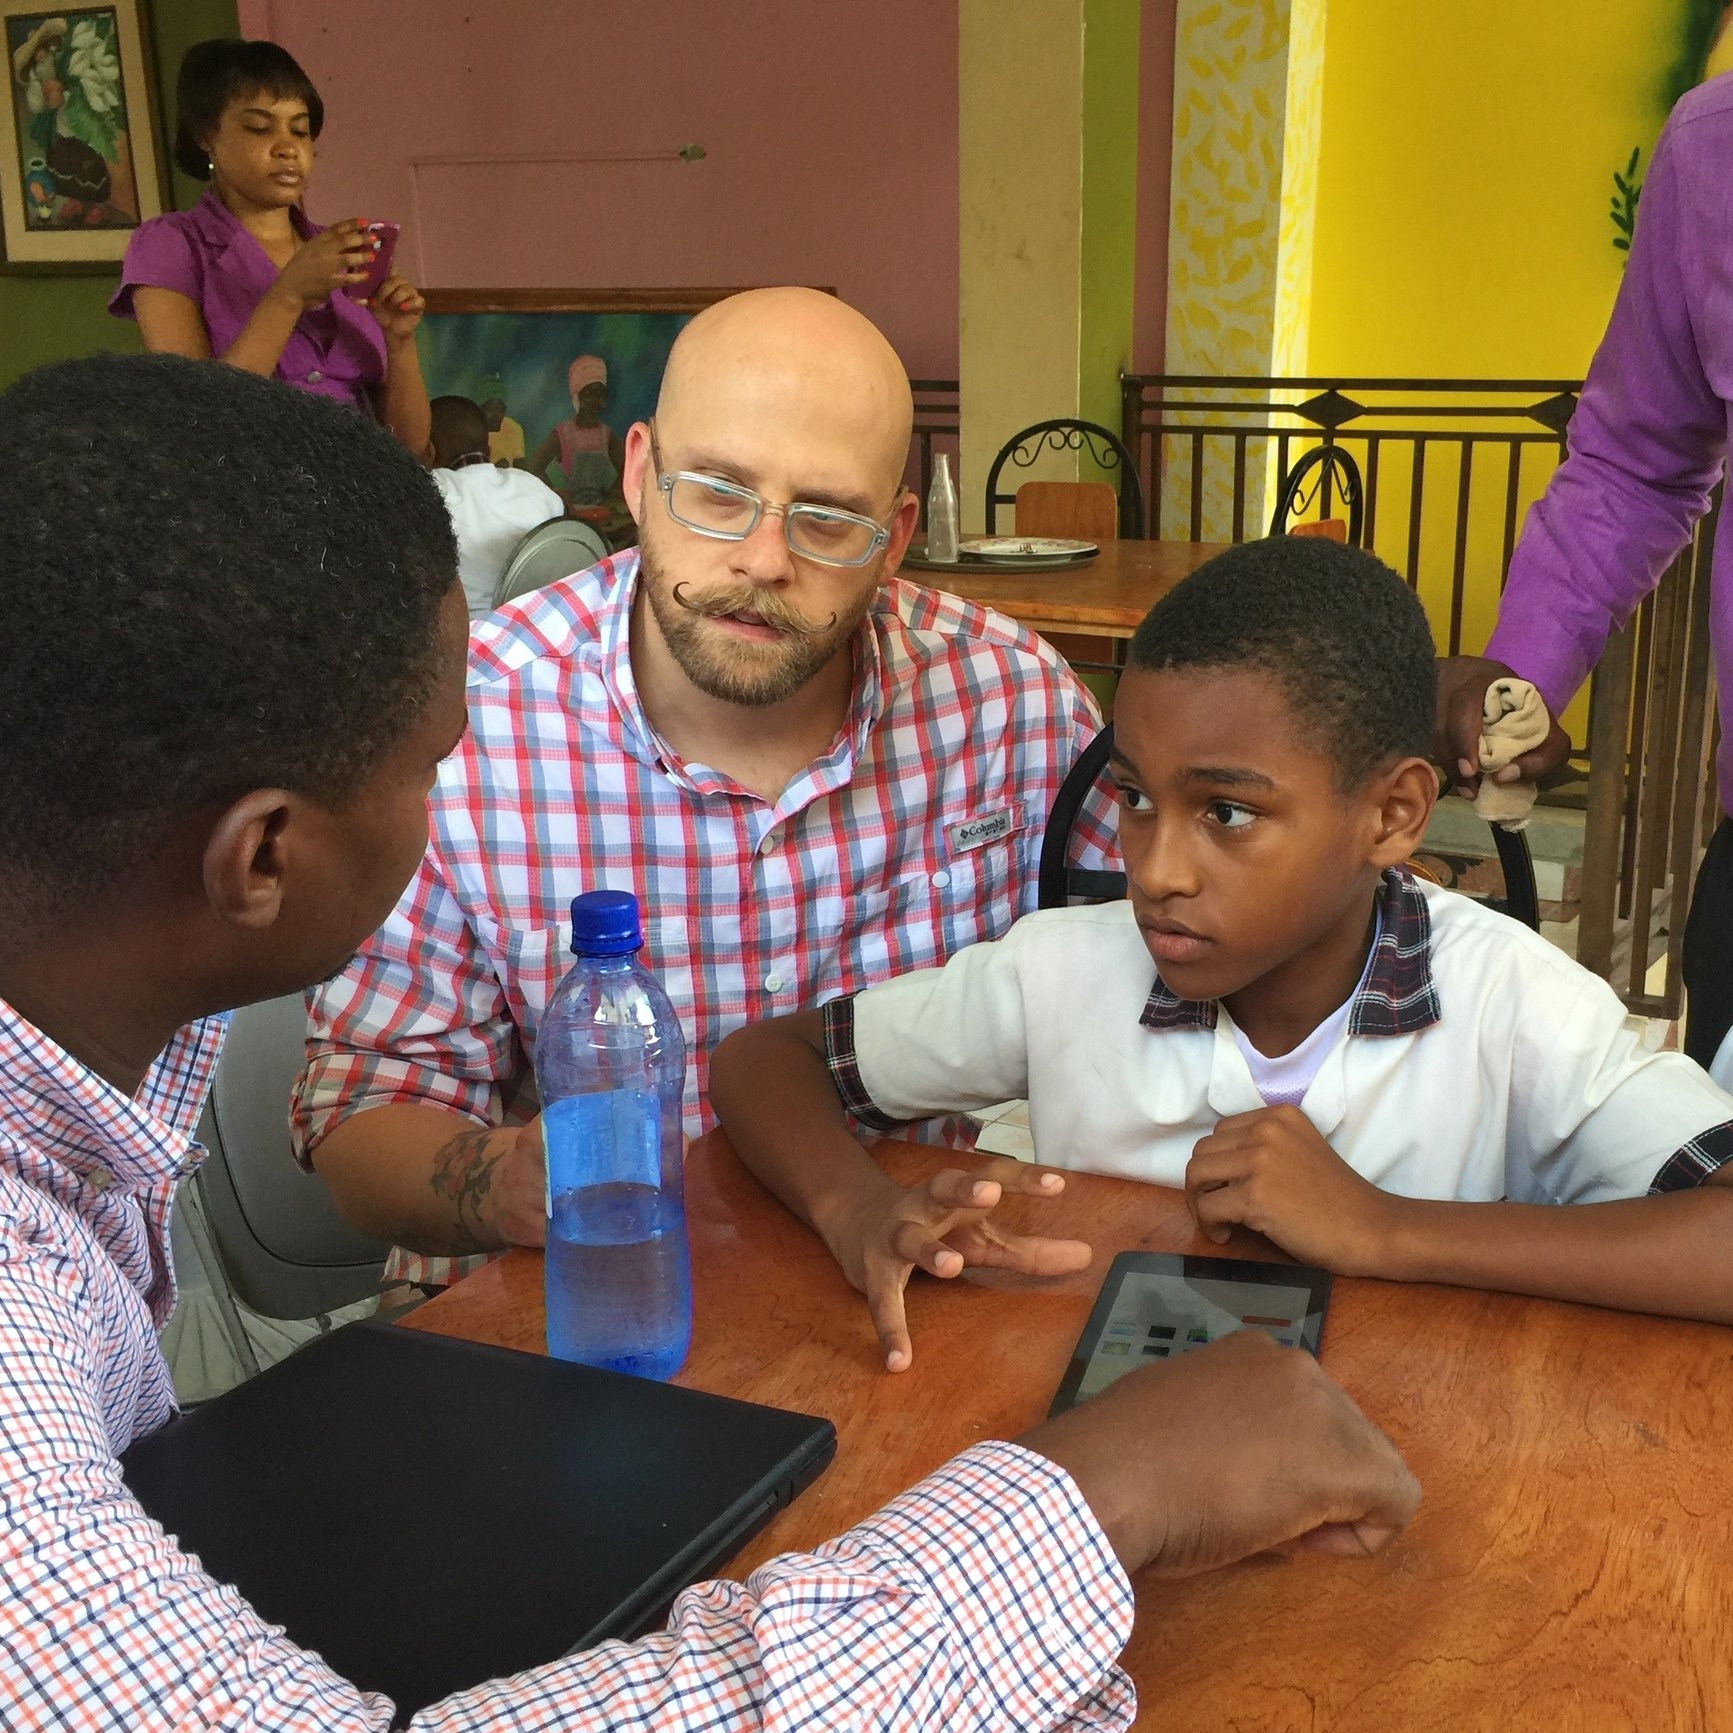 Testing rapid porototypes with students in Haiti.